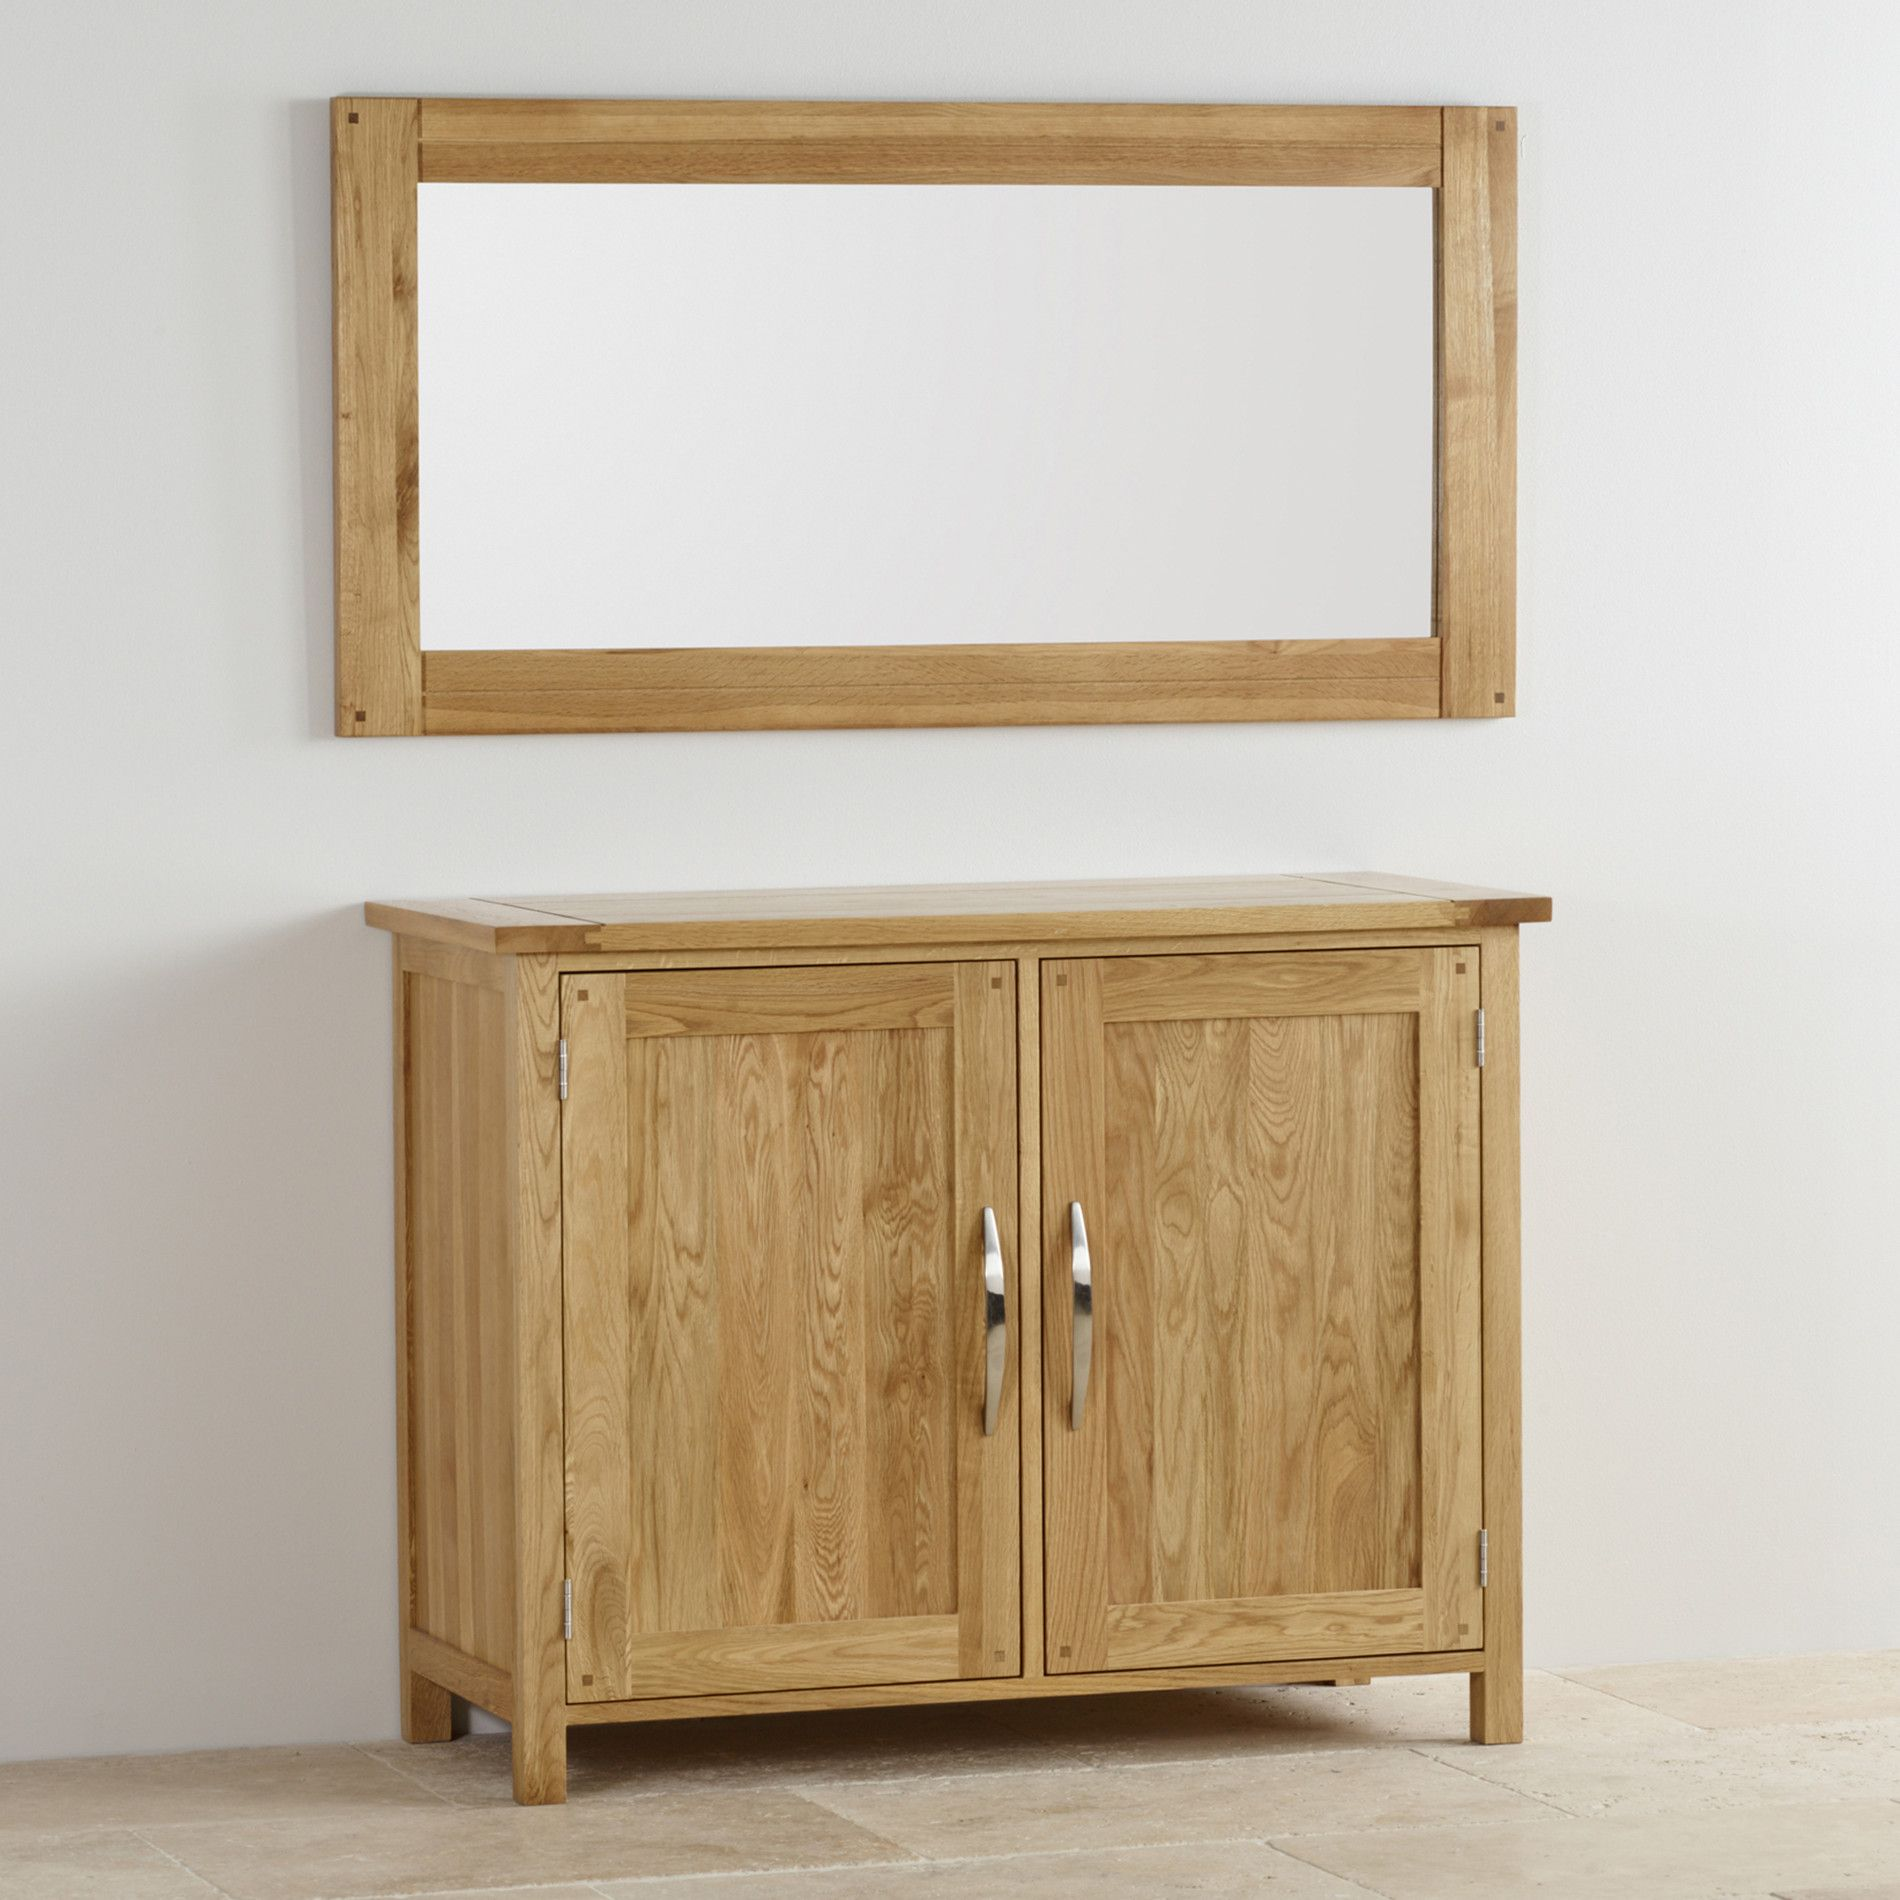 Newark natural solid oak 1200mm x 600mm wall mirror solid oak newark natural solid oak 1200mm x 600mm wall mirror solid oakconsole tableswall mirrorsnaturalfurniture geotapseo Choice Image